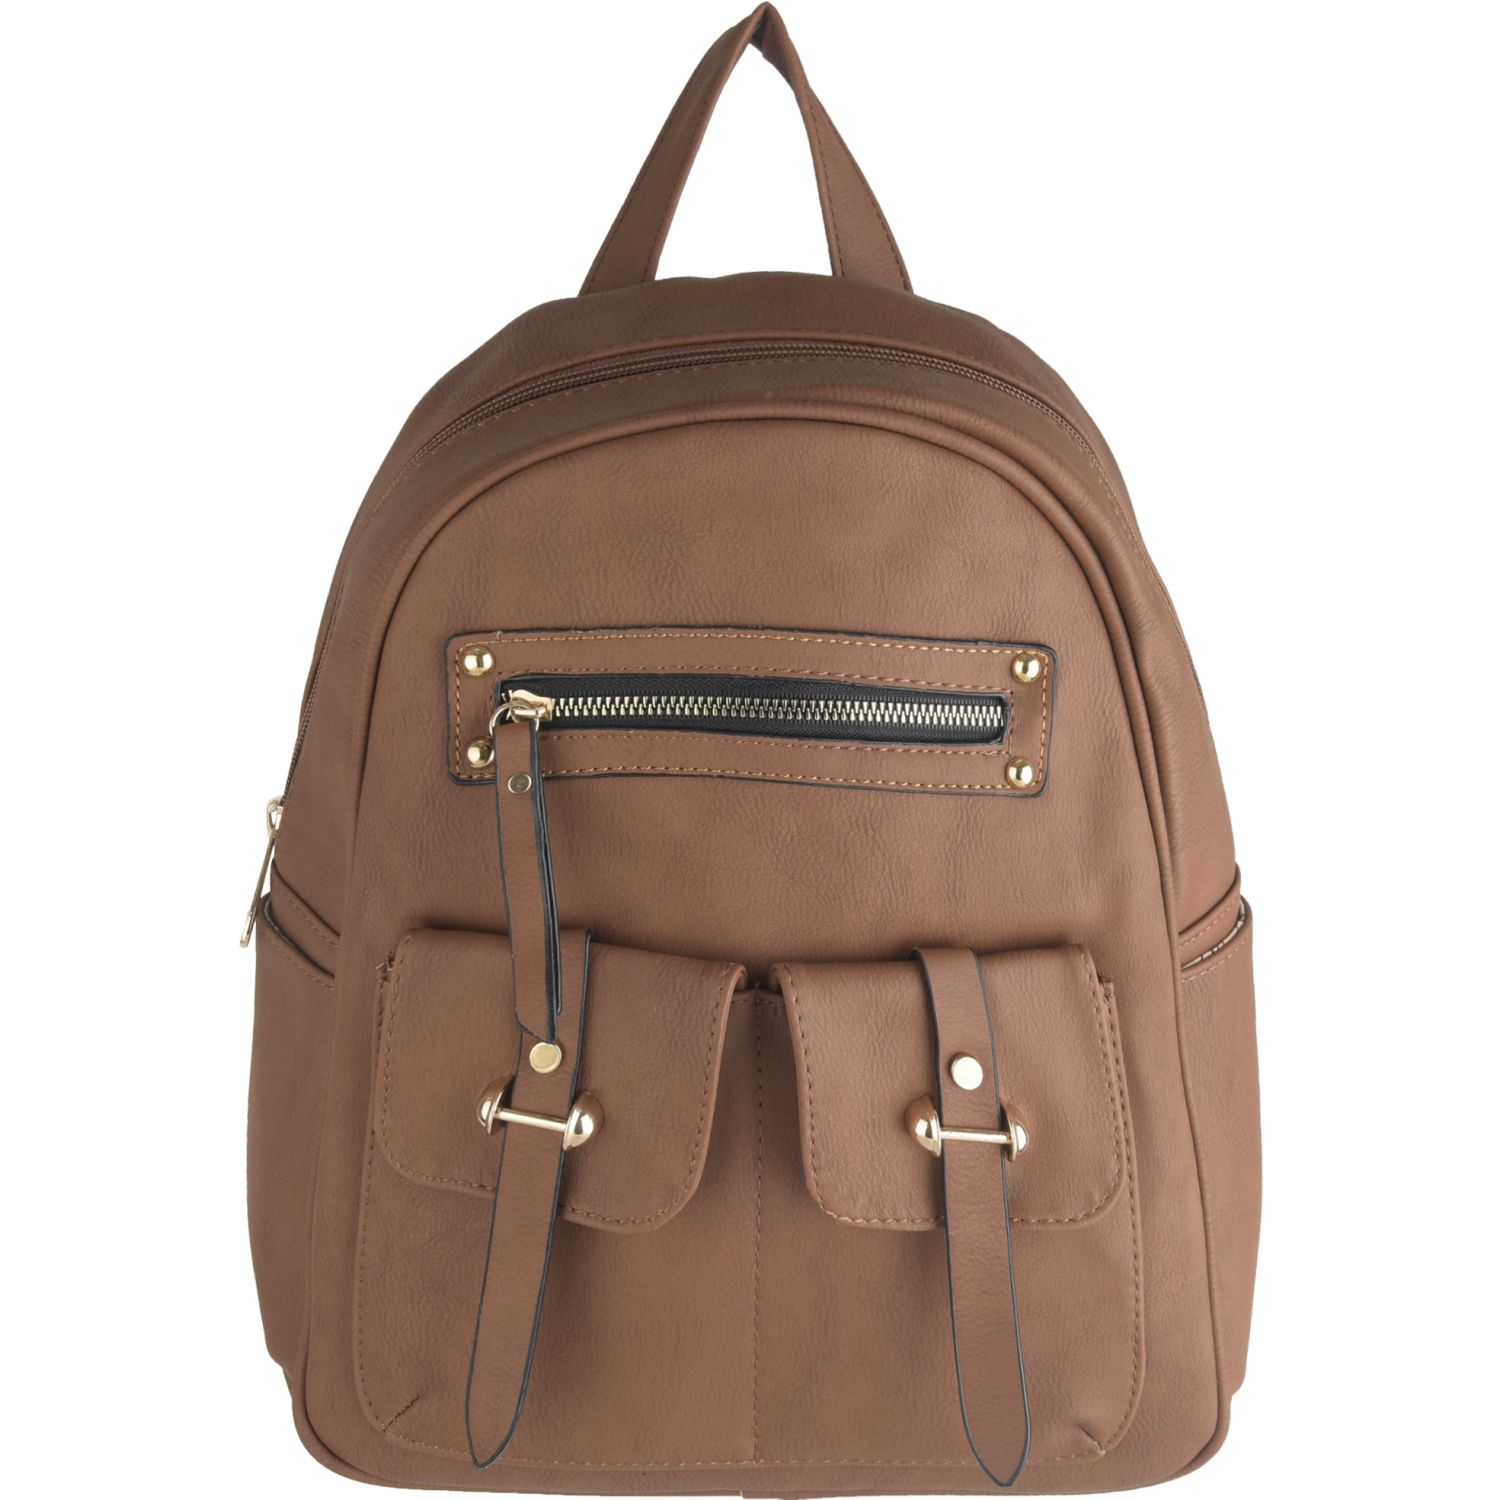 Platanitos ra0038 Marron Mochilas Fashion